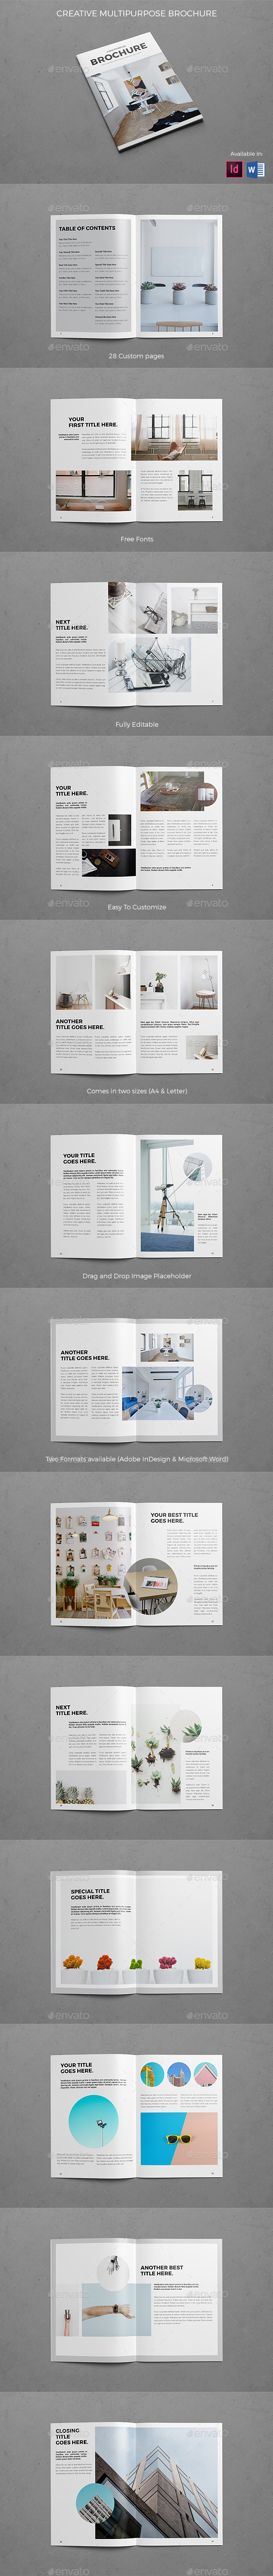 Creative Multipurpose Brochure - Brochures Print Templates